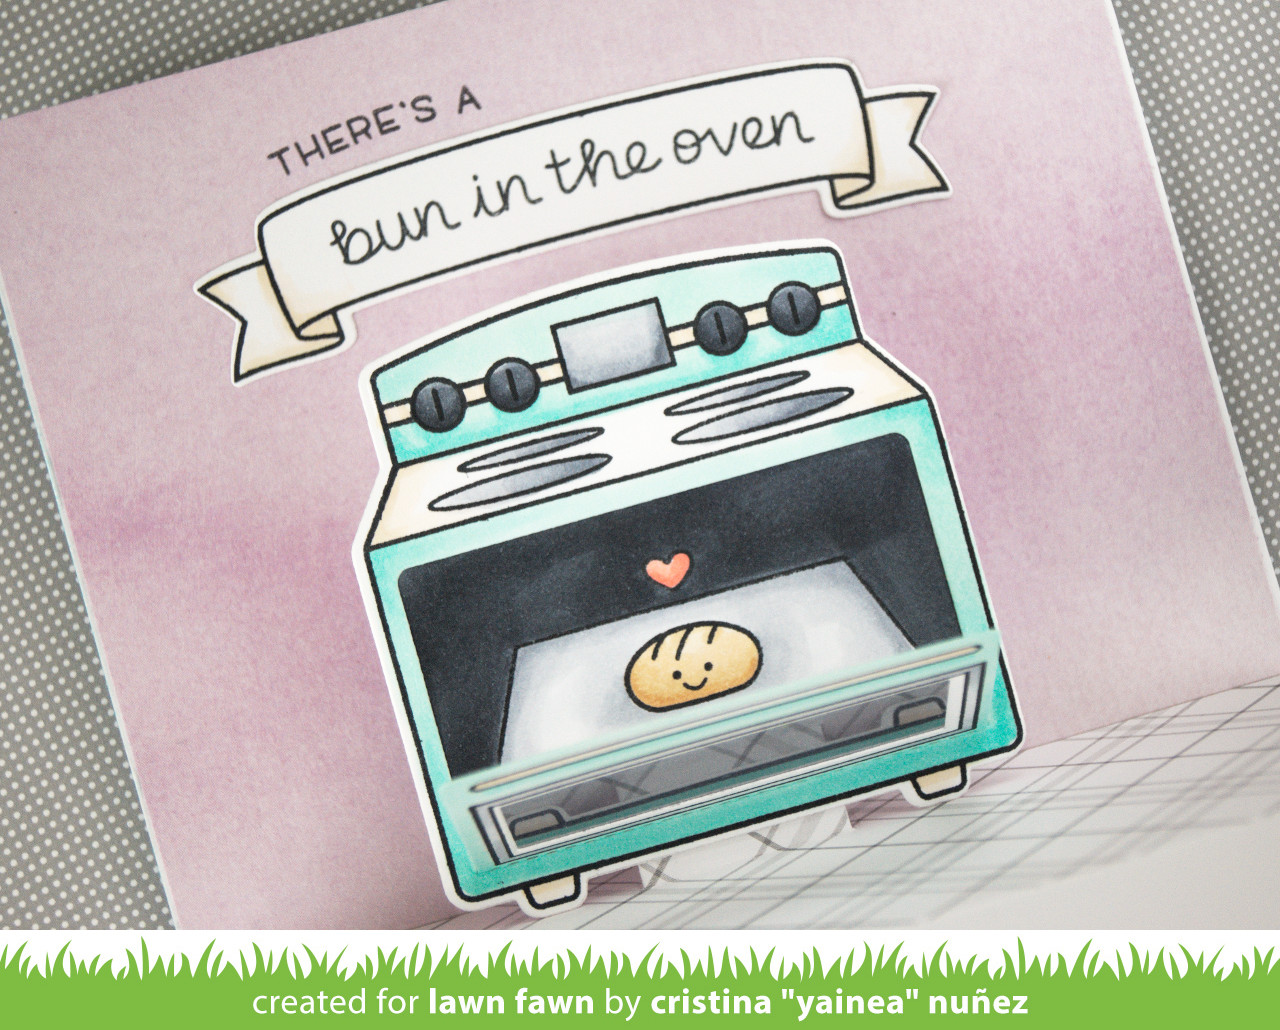 the Lawn Fawn blog Lawn Fawn Intro Bun in the Oven It s